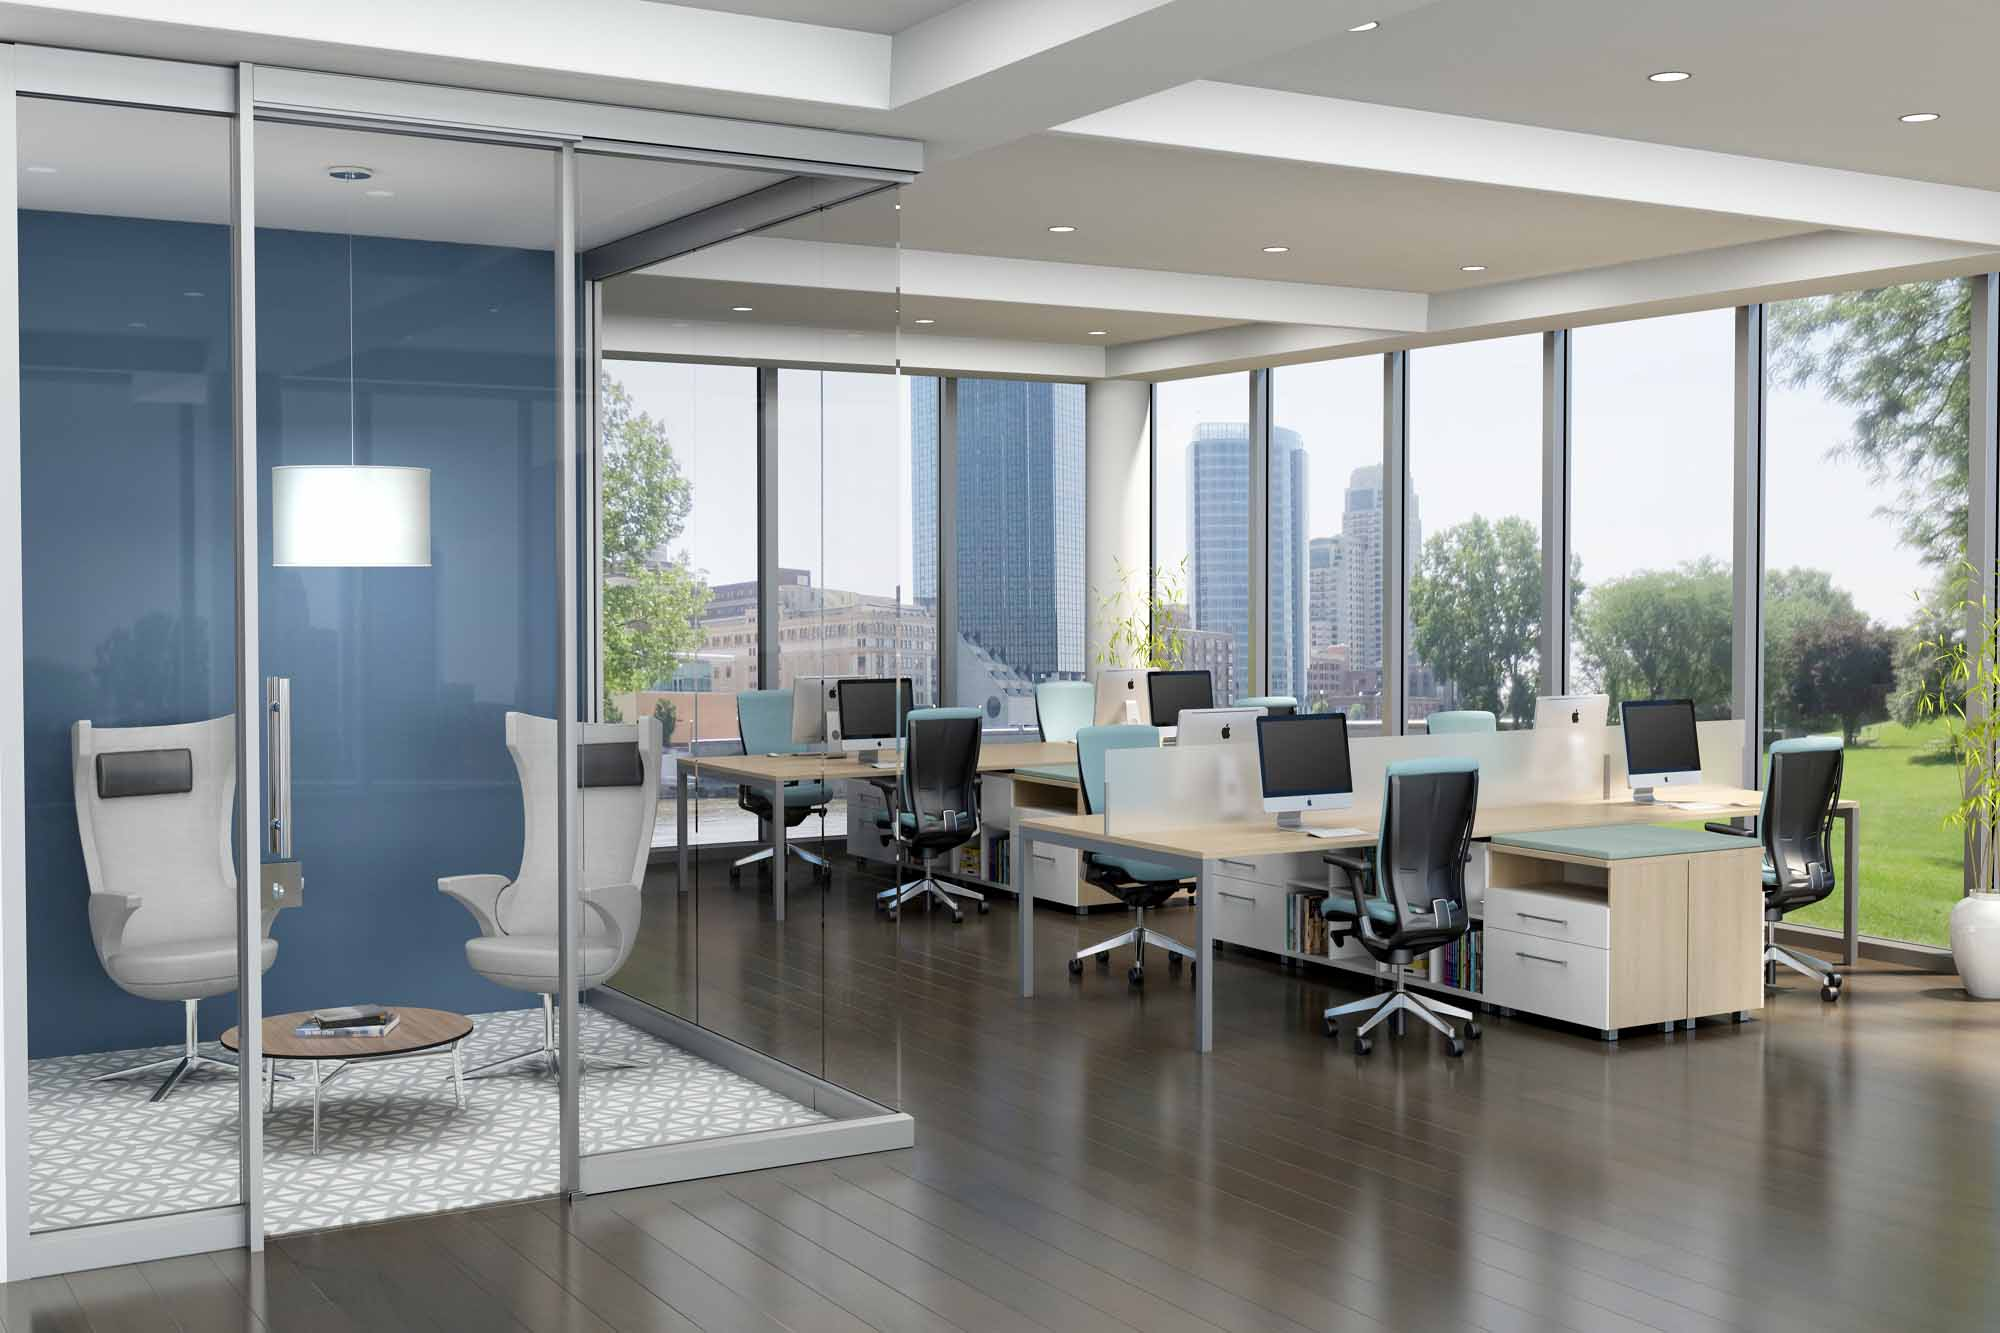 From workstations to demountable walls, conference and training tables to lounge and task seating, Trendway is the one-stop shop for all your office furniture needs.